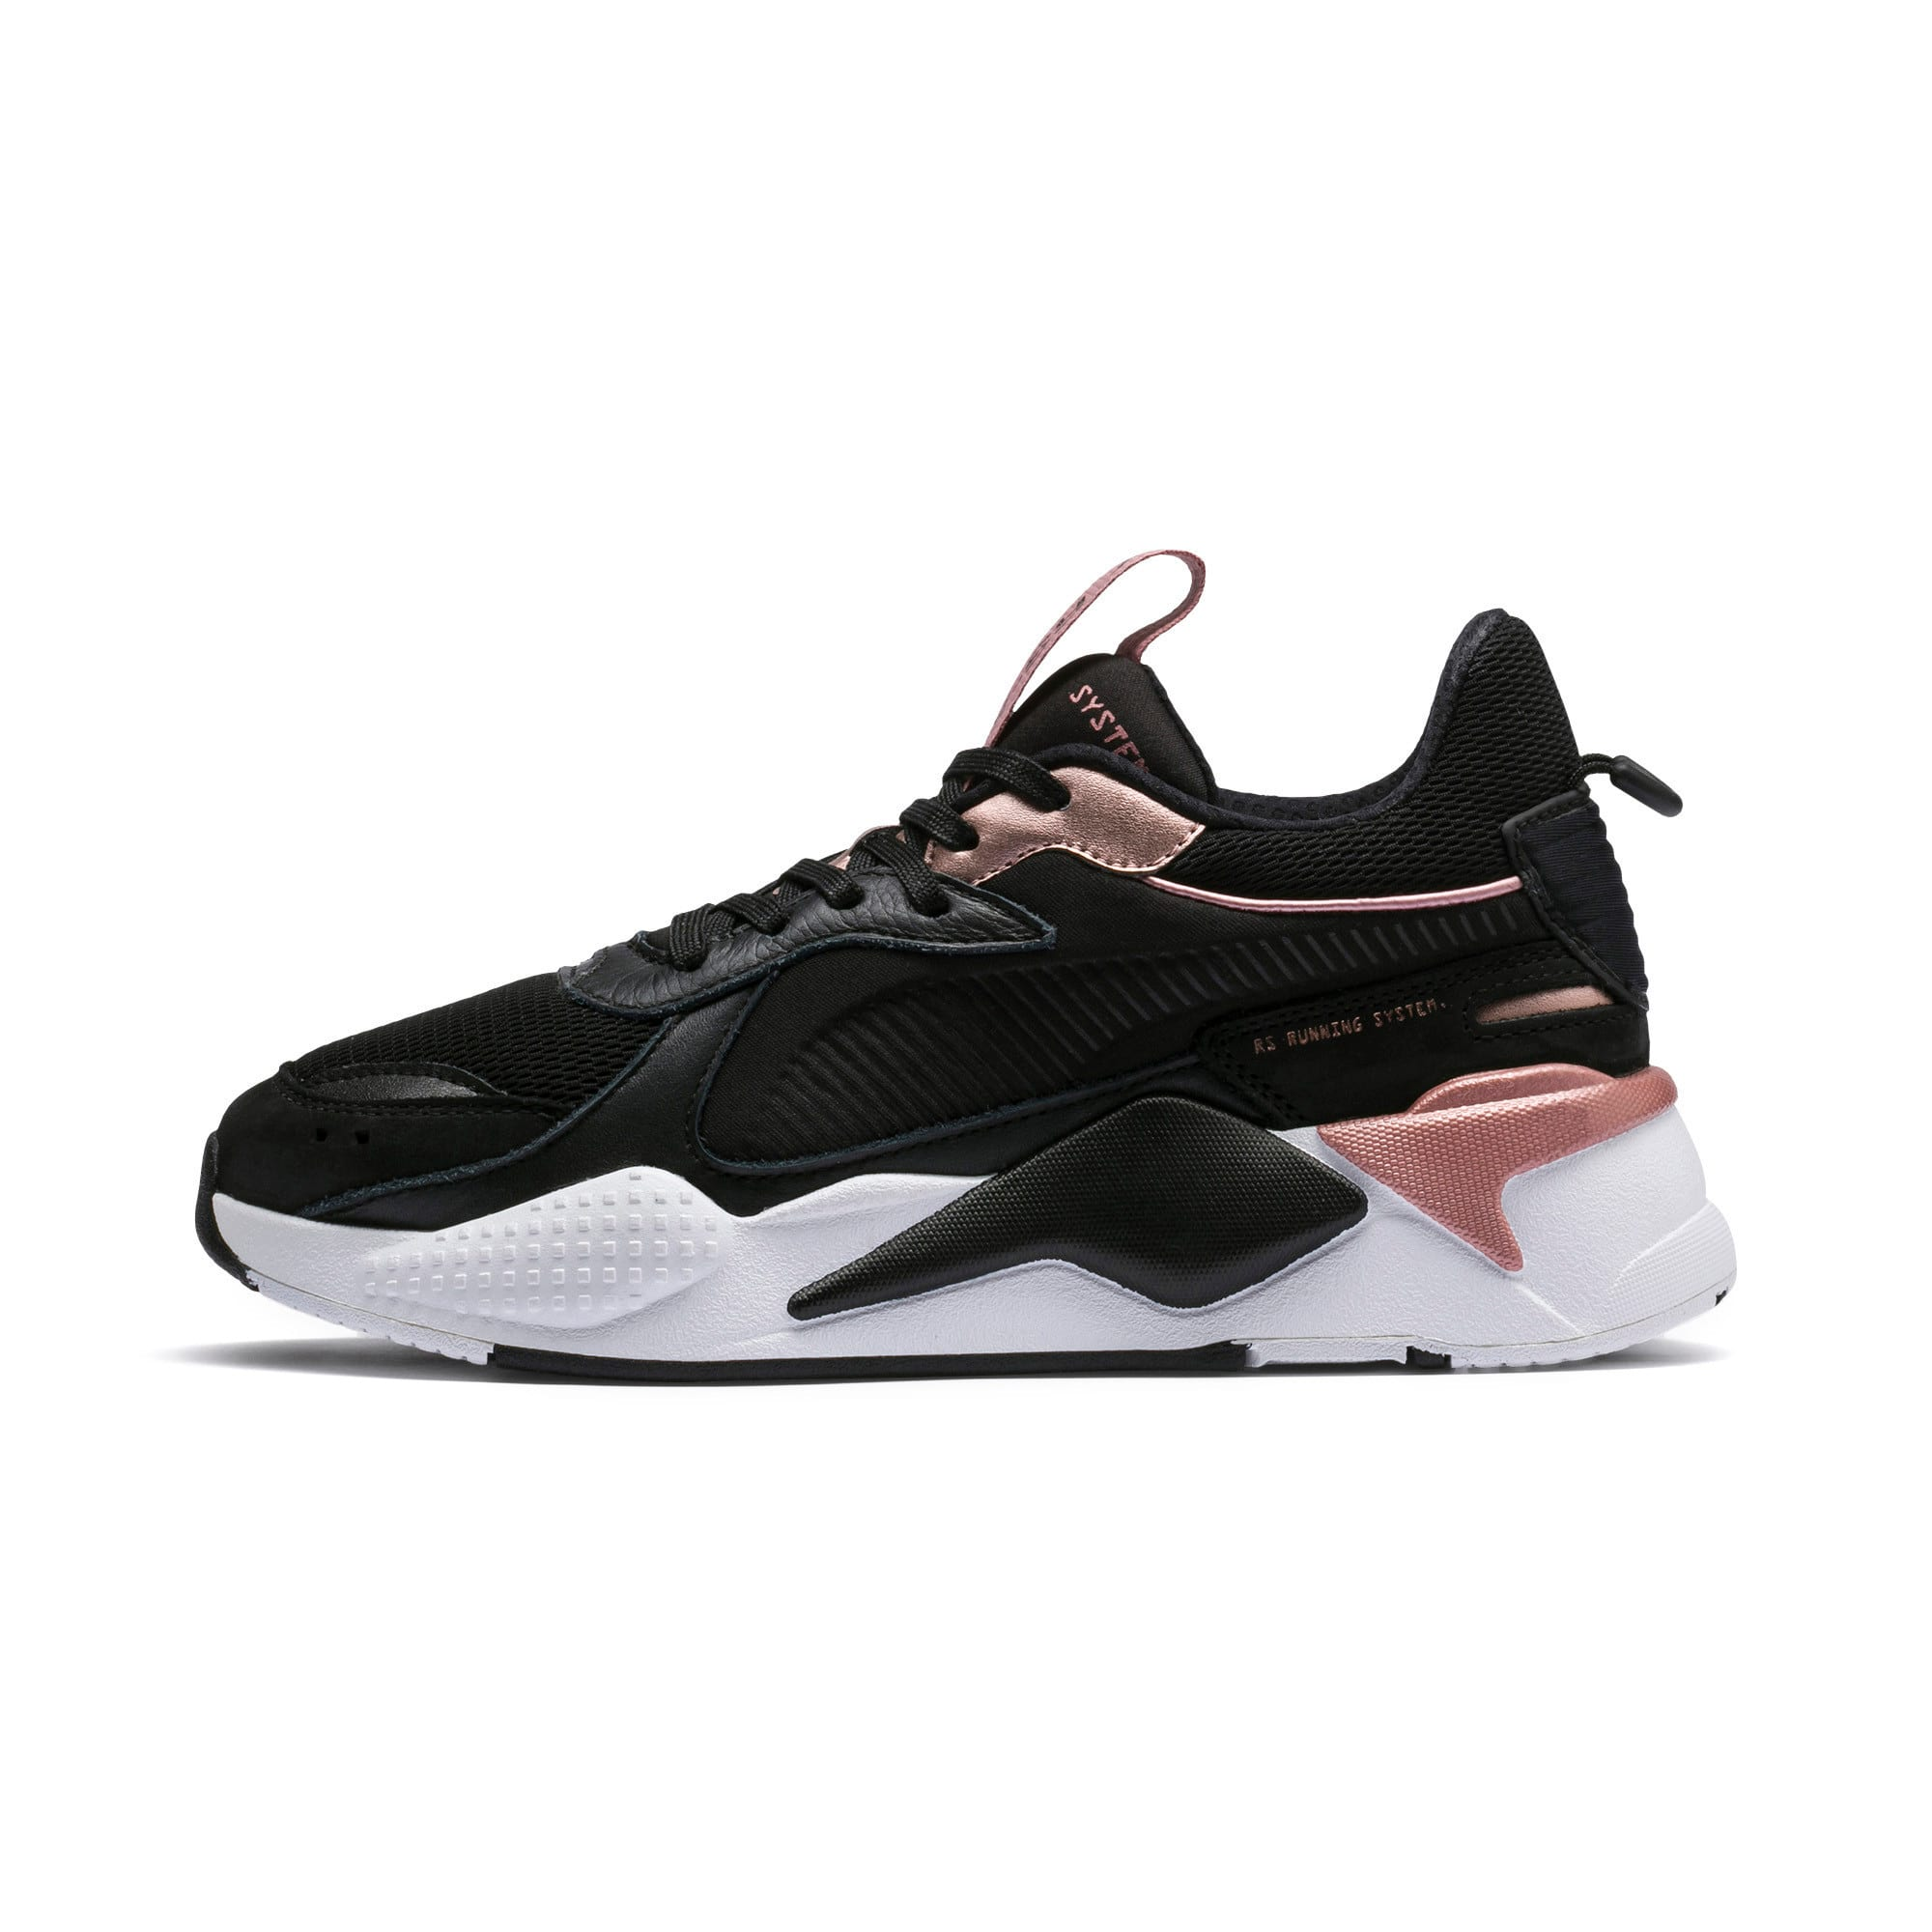 Thumbnail 1 of RS-X Trophy Women's Sneakers, Puma Black-Rose Gold, medium